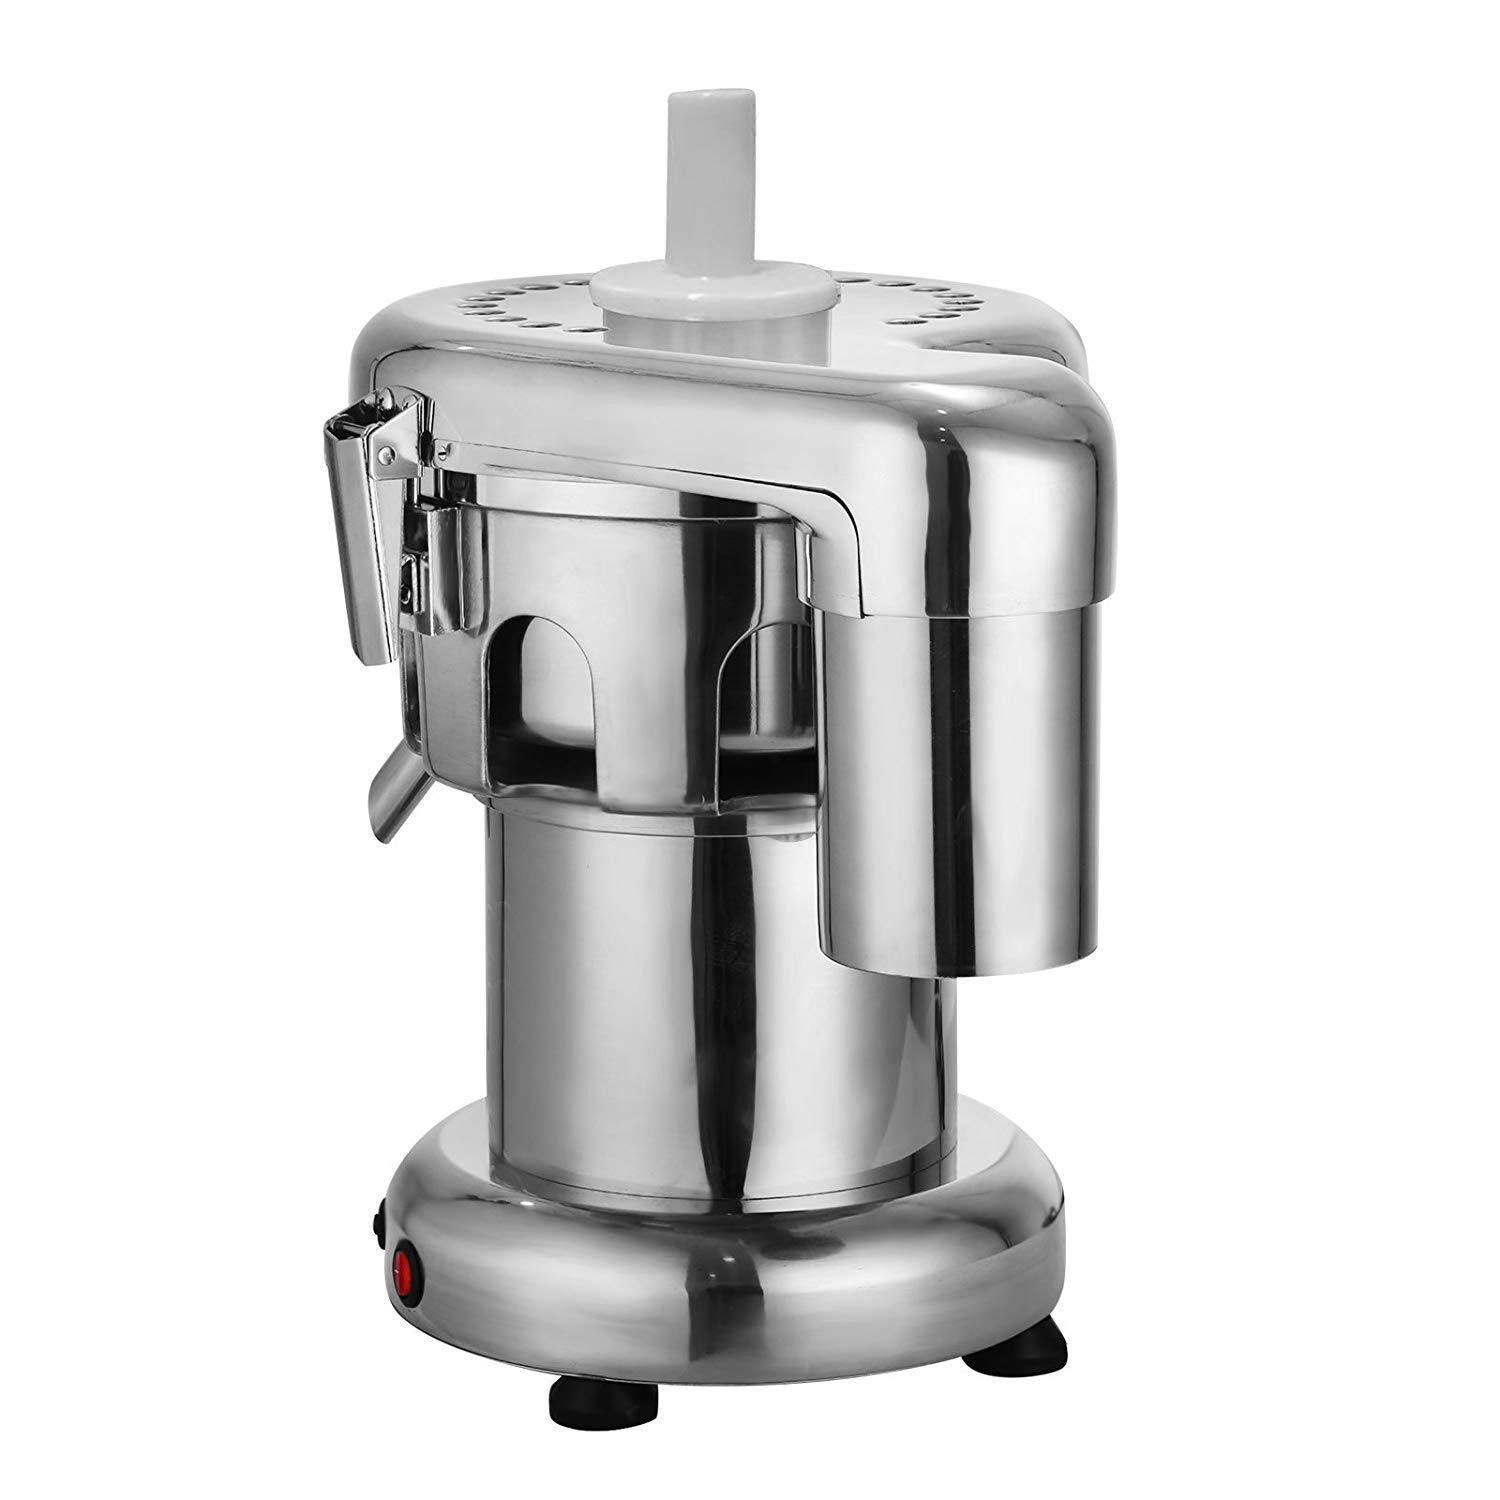 KITGARN Commercial Juicer Extractor 550W 2800RPM Heavy Duty Vegetable Fruit Juice Extractor Stainless Steel Extractor Machine Professional WF-2000 Commercial Juicer Extractor